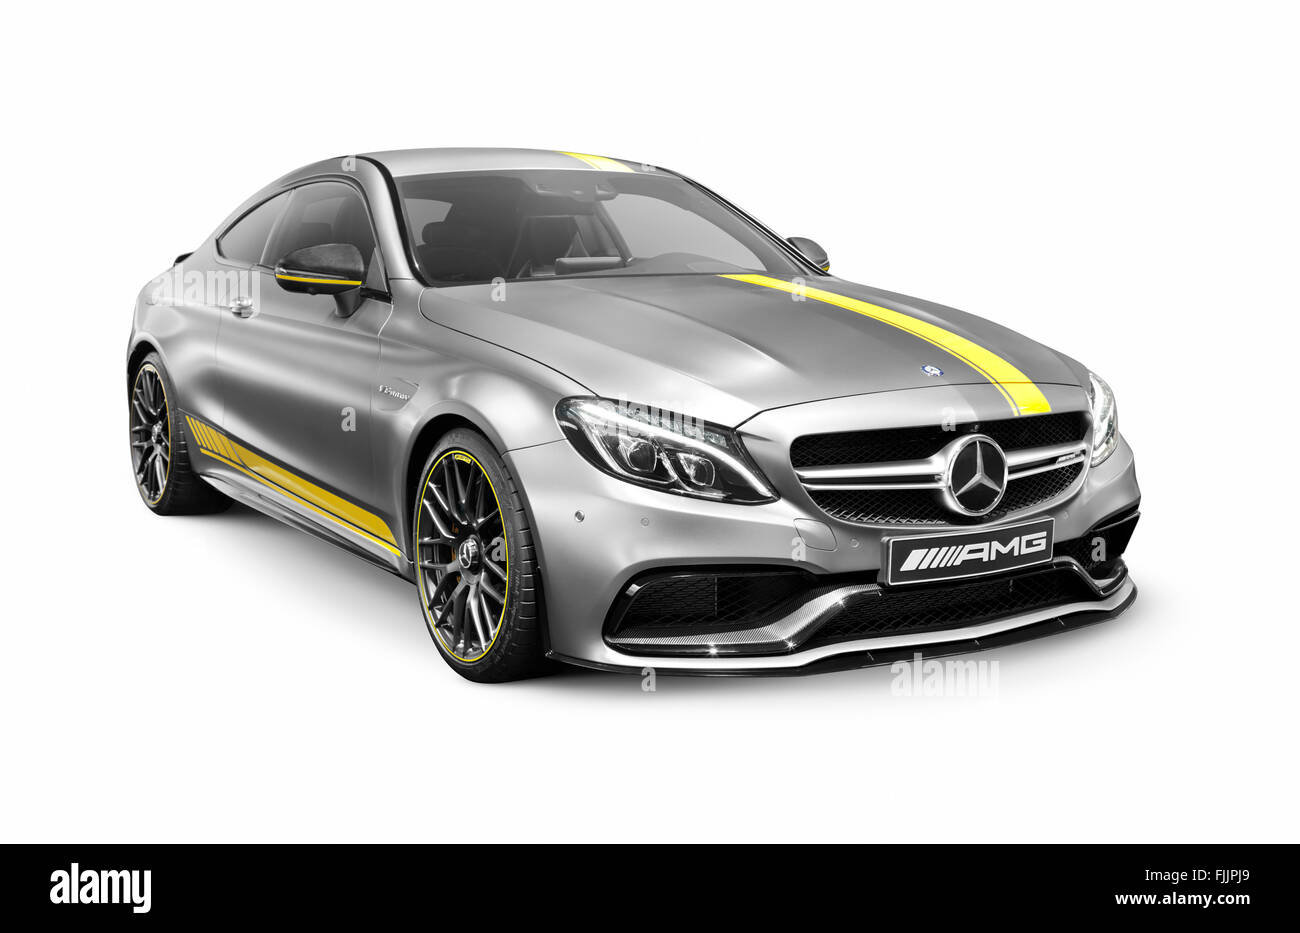 Wonderful Silver 2016 Mercedesu2011AMG C 63 S Luxury Sports Car. Mercedes Benz AMG  C Class Isolated On White Background With Clipping Path.